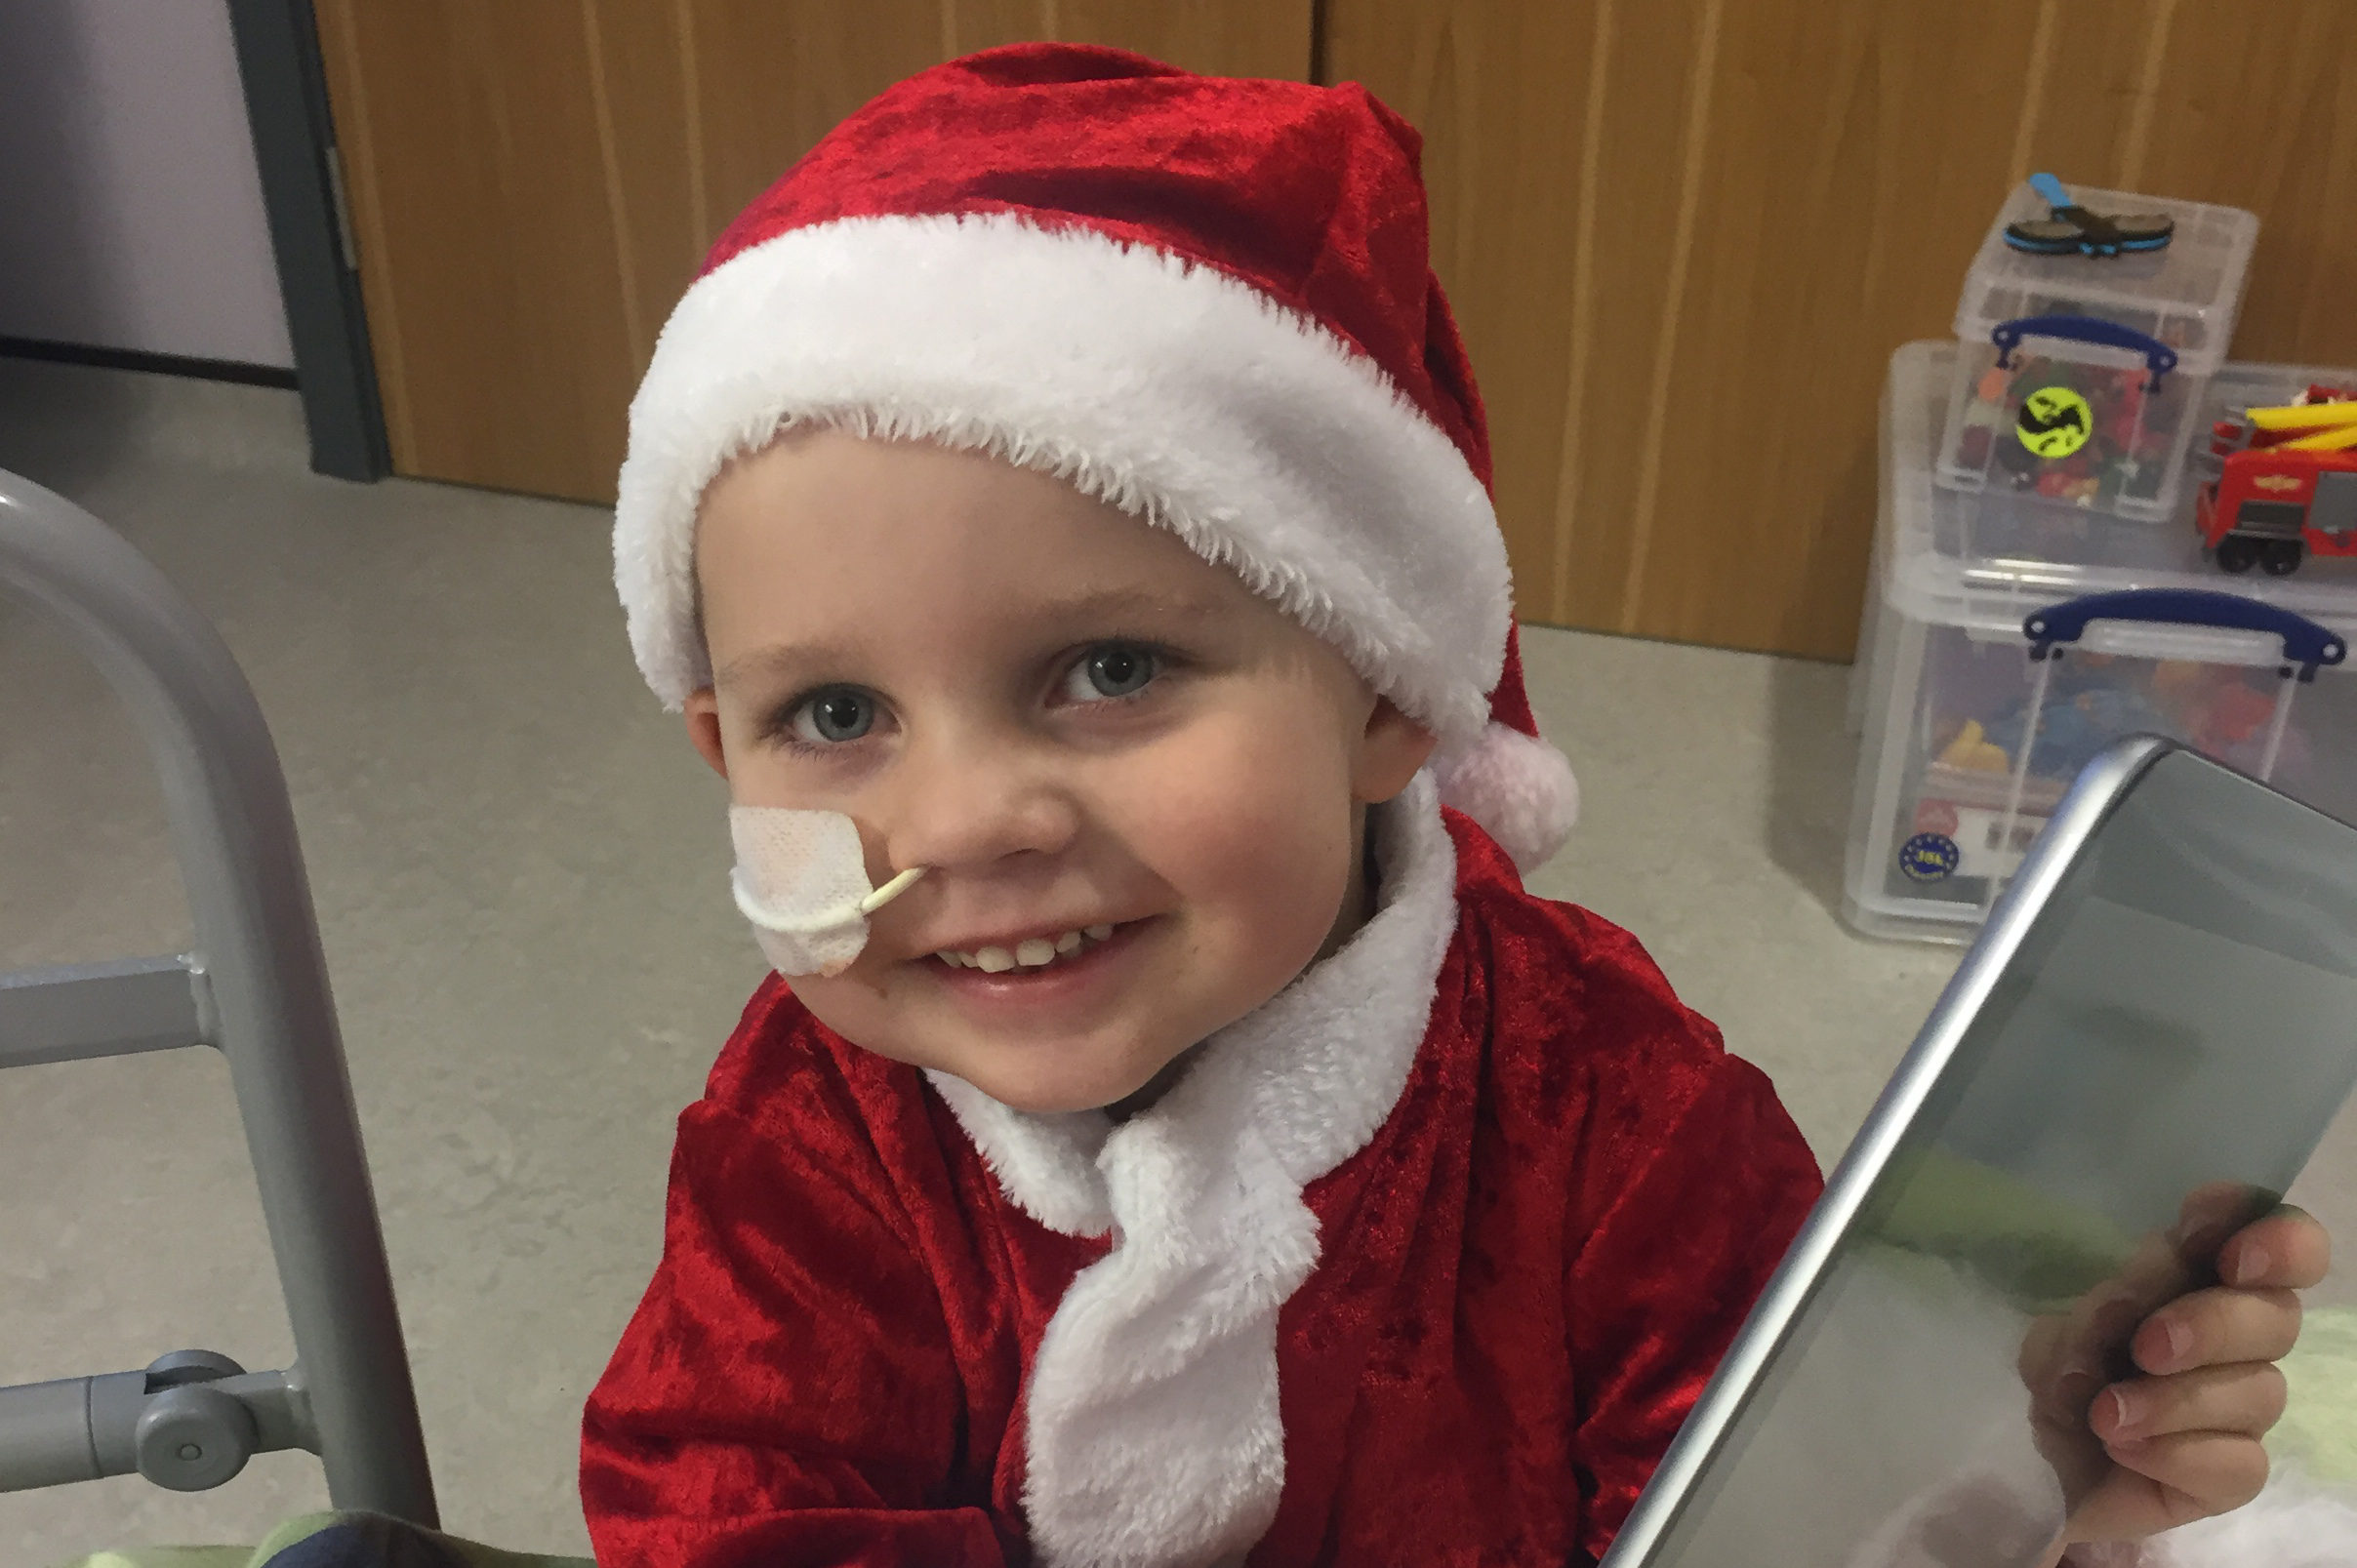 Callum Kyle, who is in the hospital for sick children in Glasgow. He is suffering from Leukaemia and so cannot spend Christmas with his sisters Emma and Erin in Crianlarich.